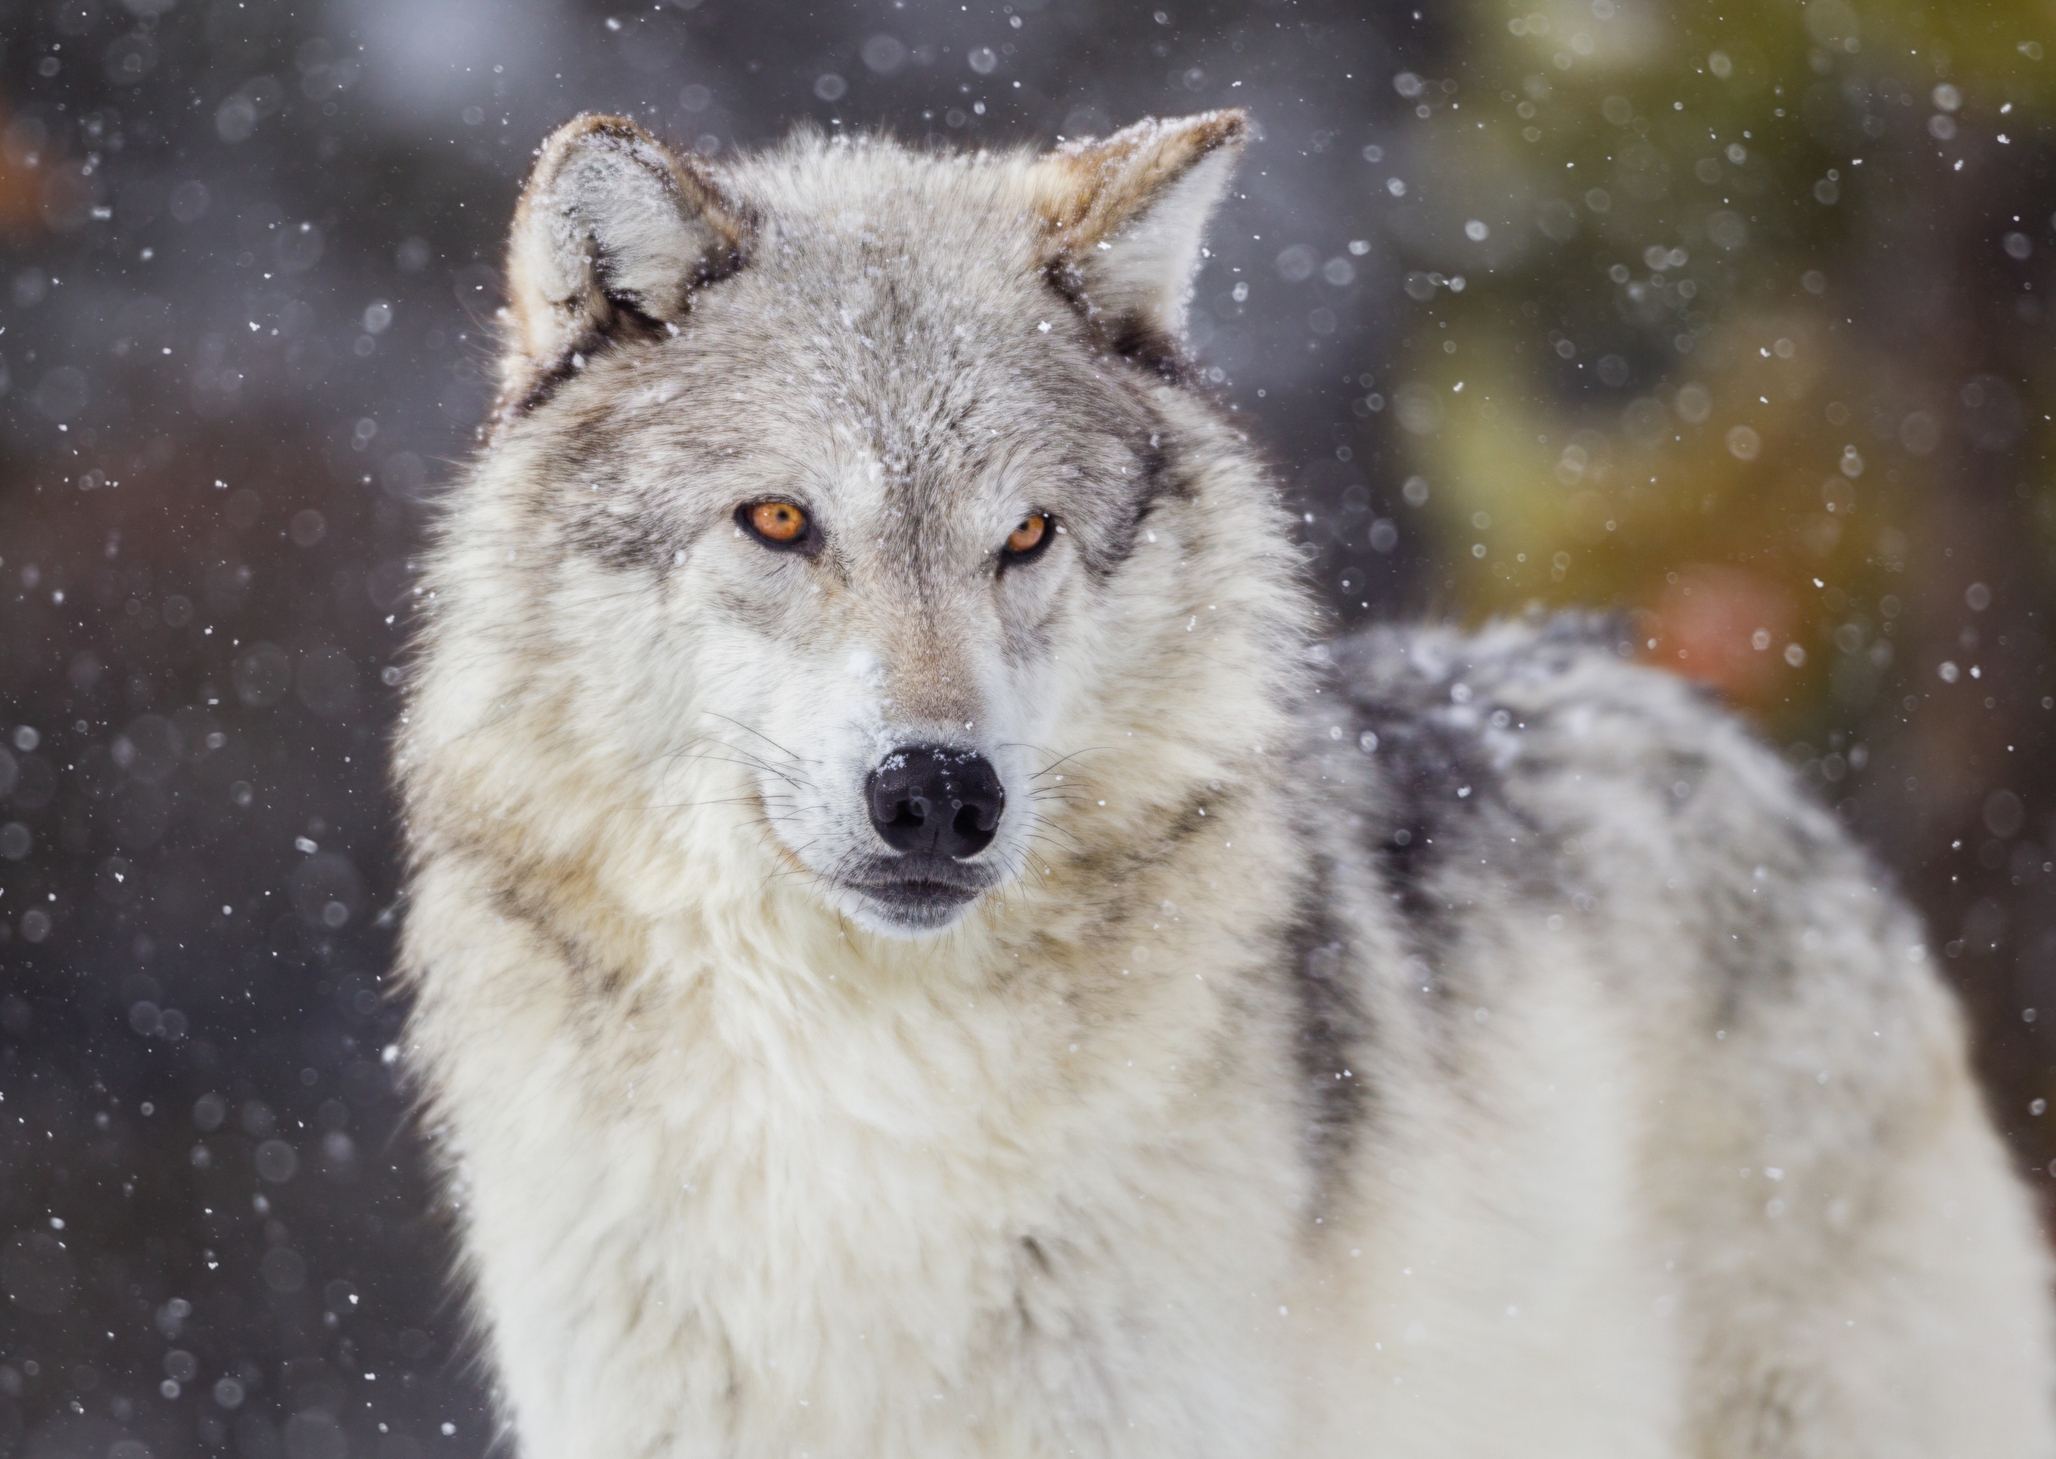 Wisconsin wolf hunt ends early after 82 wolves harvested in less than two days